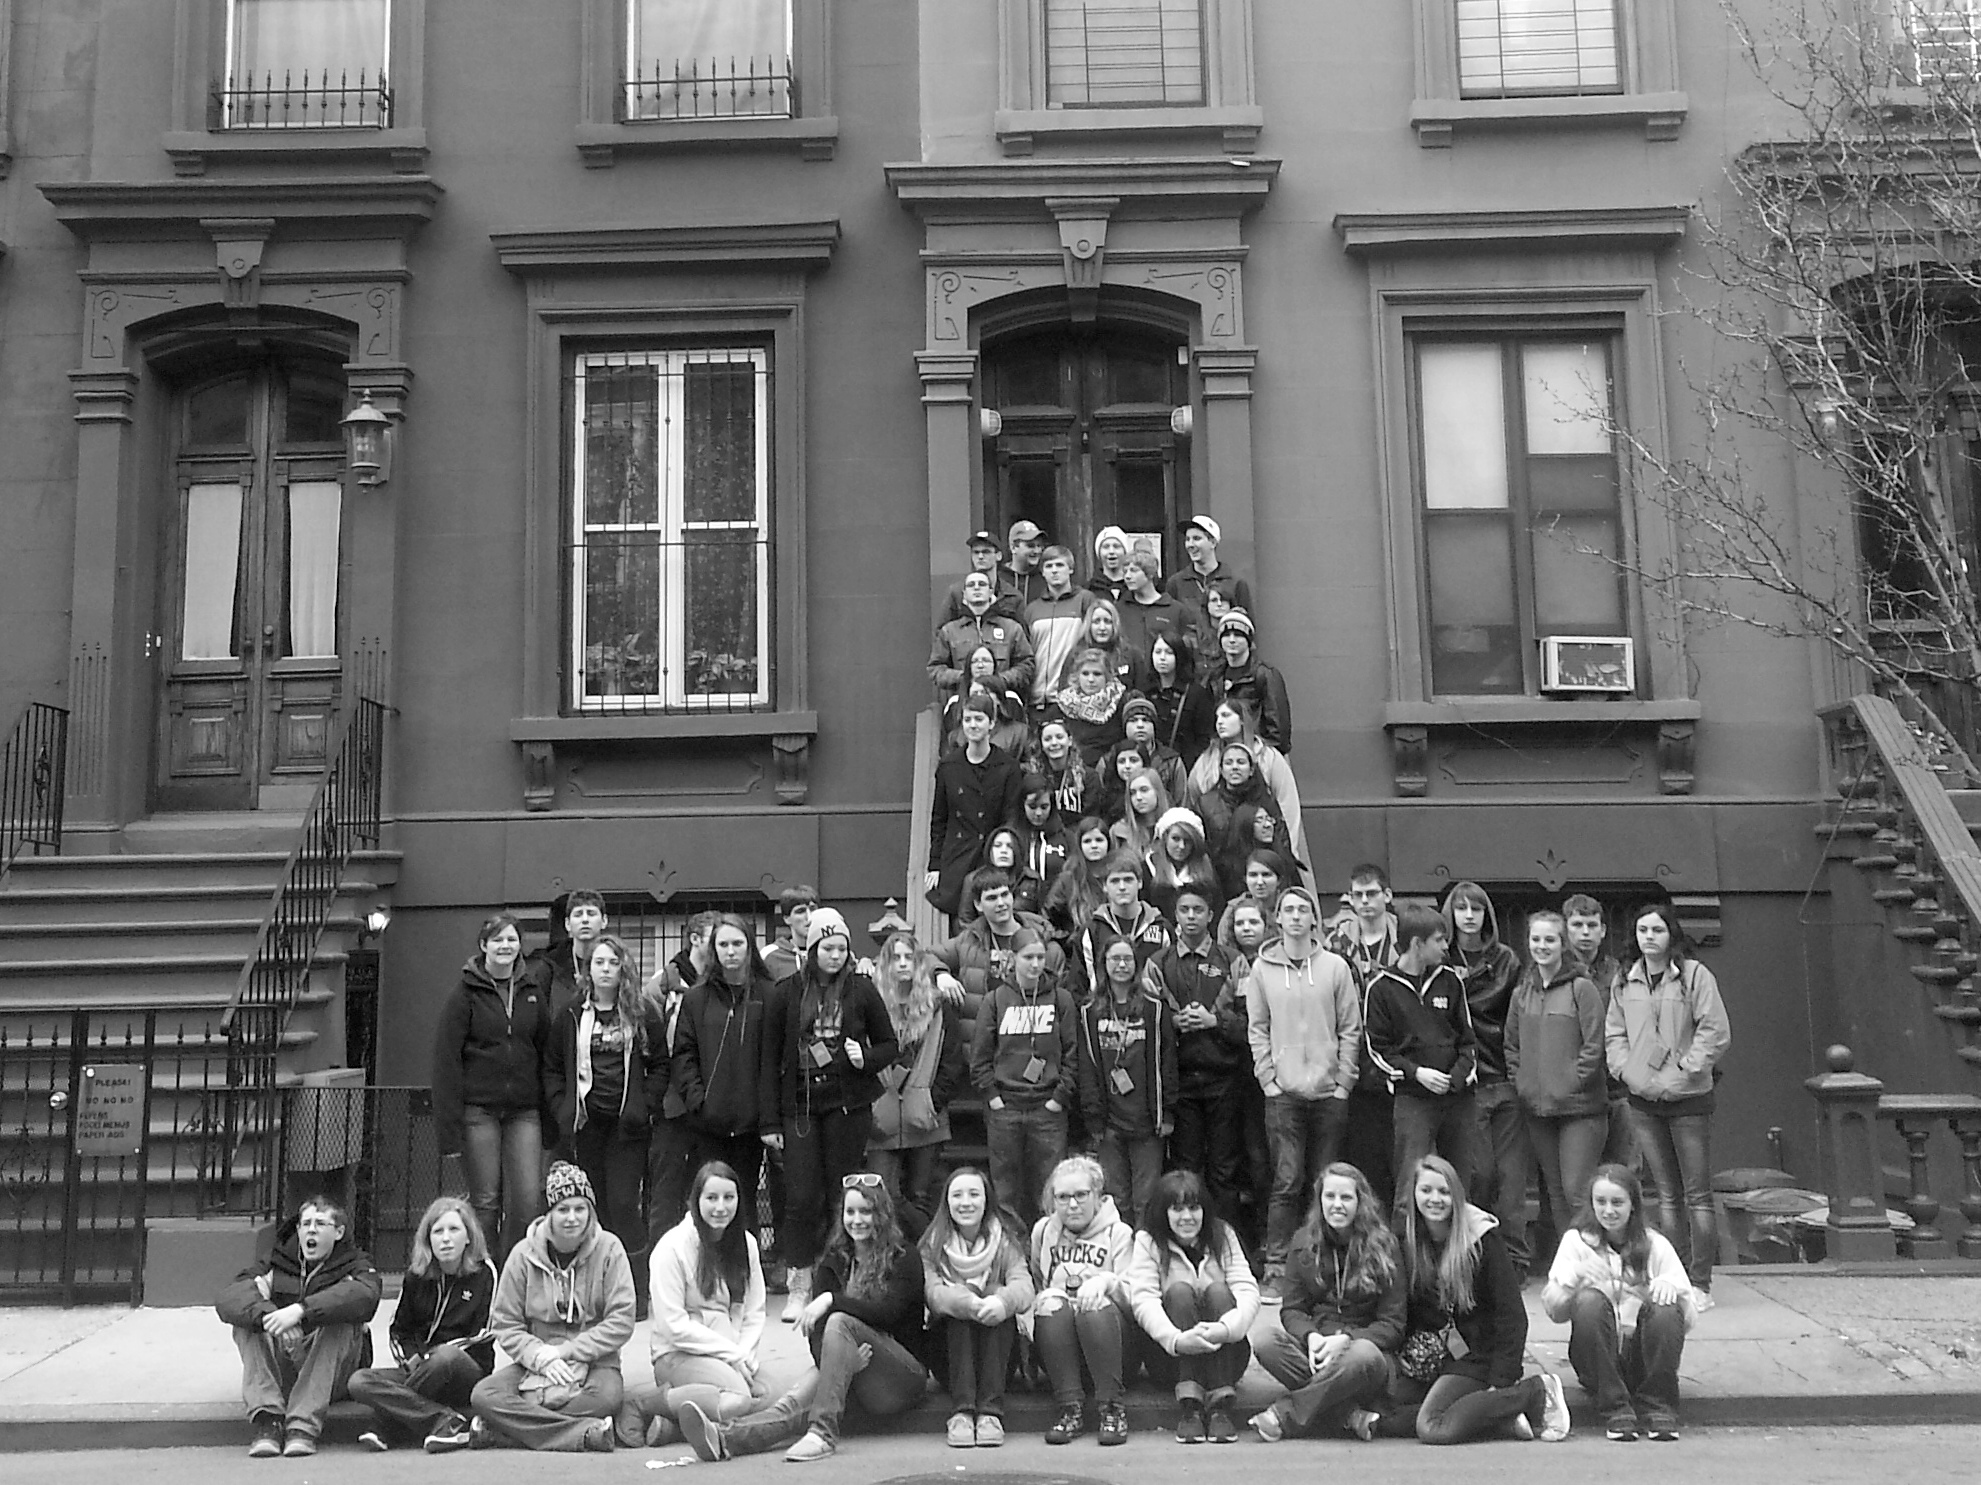 students-recreate-the-most-famous-photo-in-the-history-of-harlem-jazz